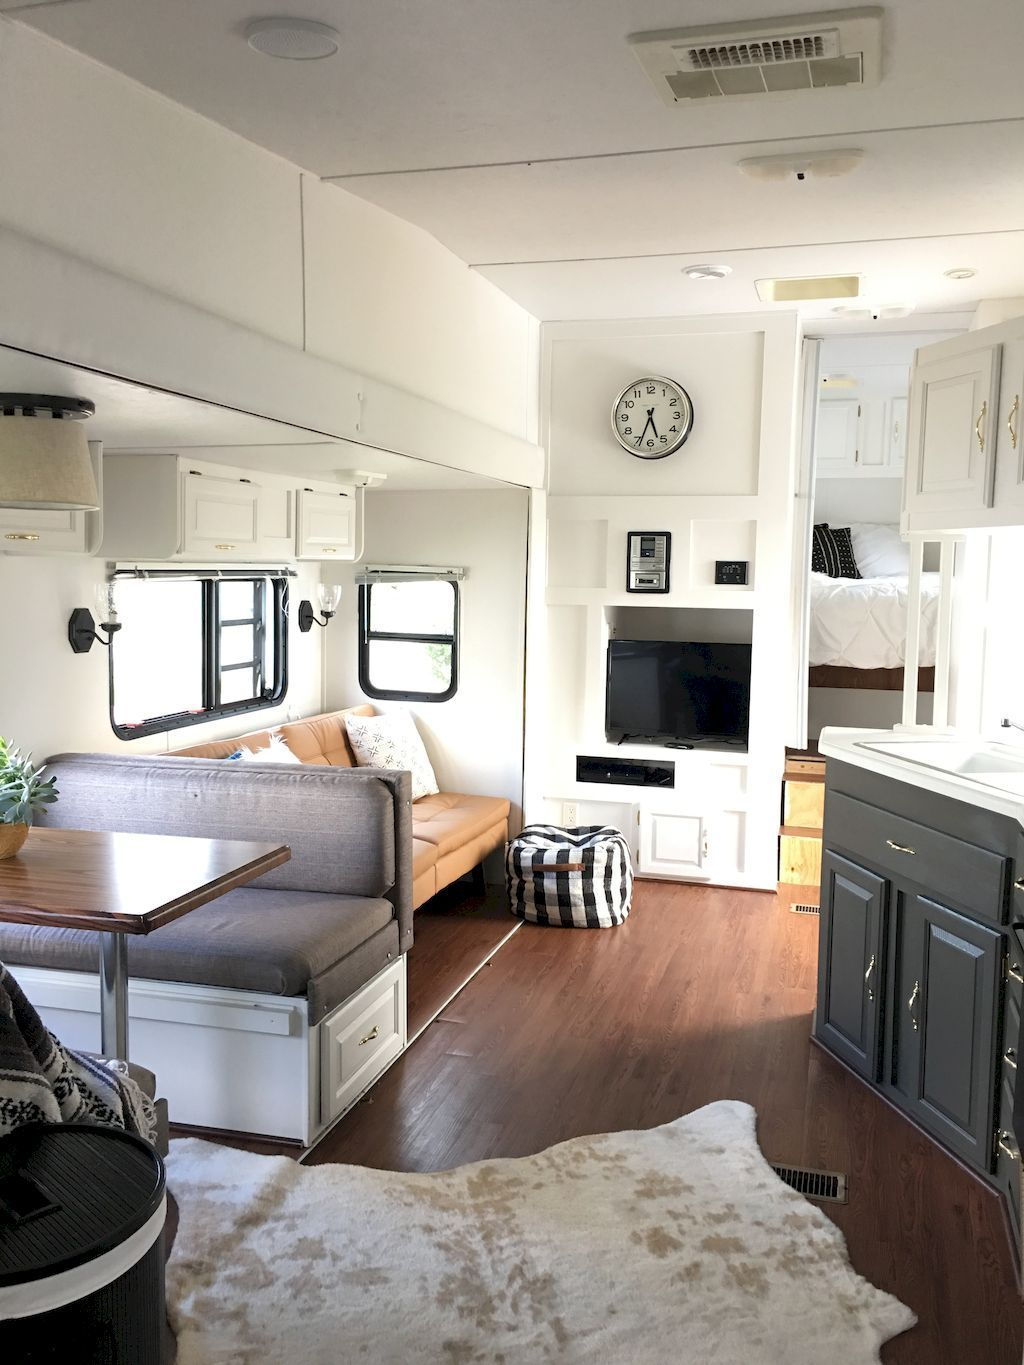 Camper Remodel Ideas For Renovating Rv Travel Trailers 26